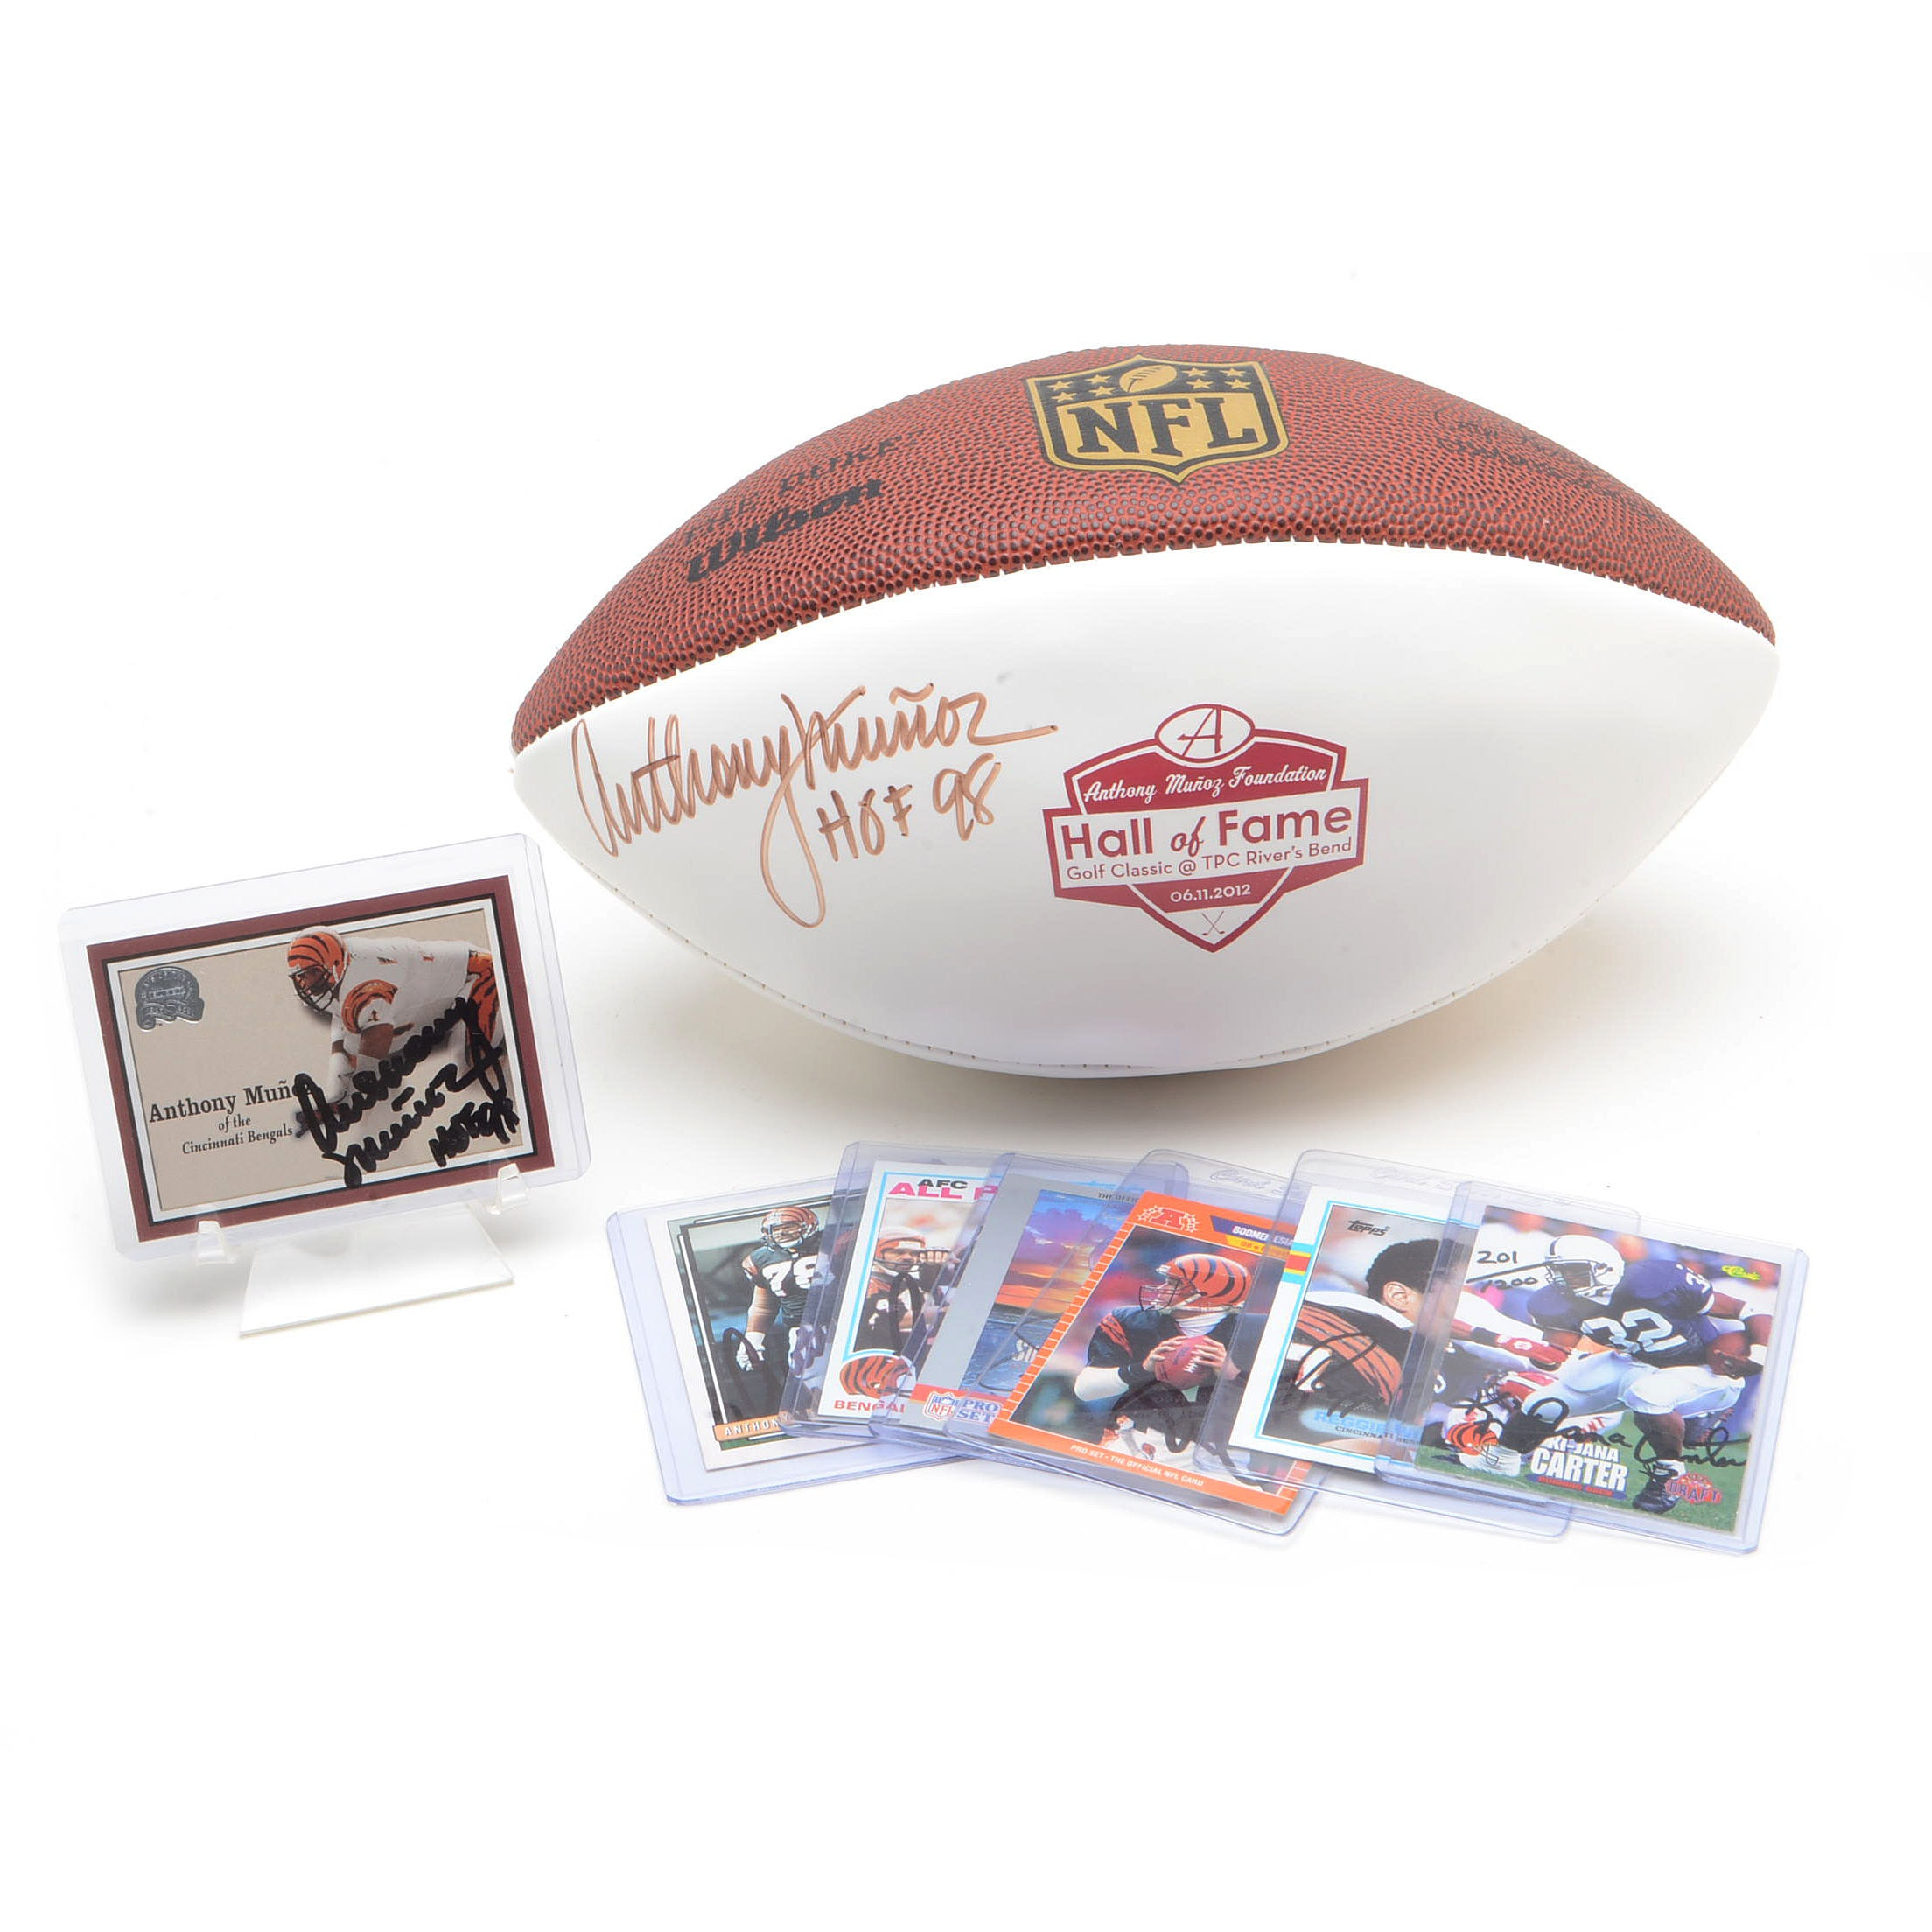 Munoz Signed Football and Other Bengal Signed Cards